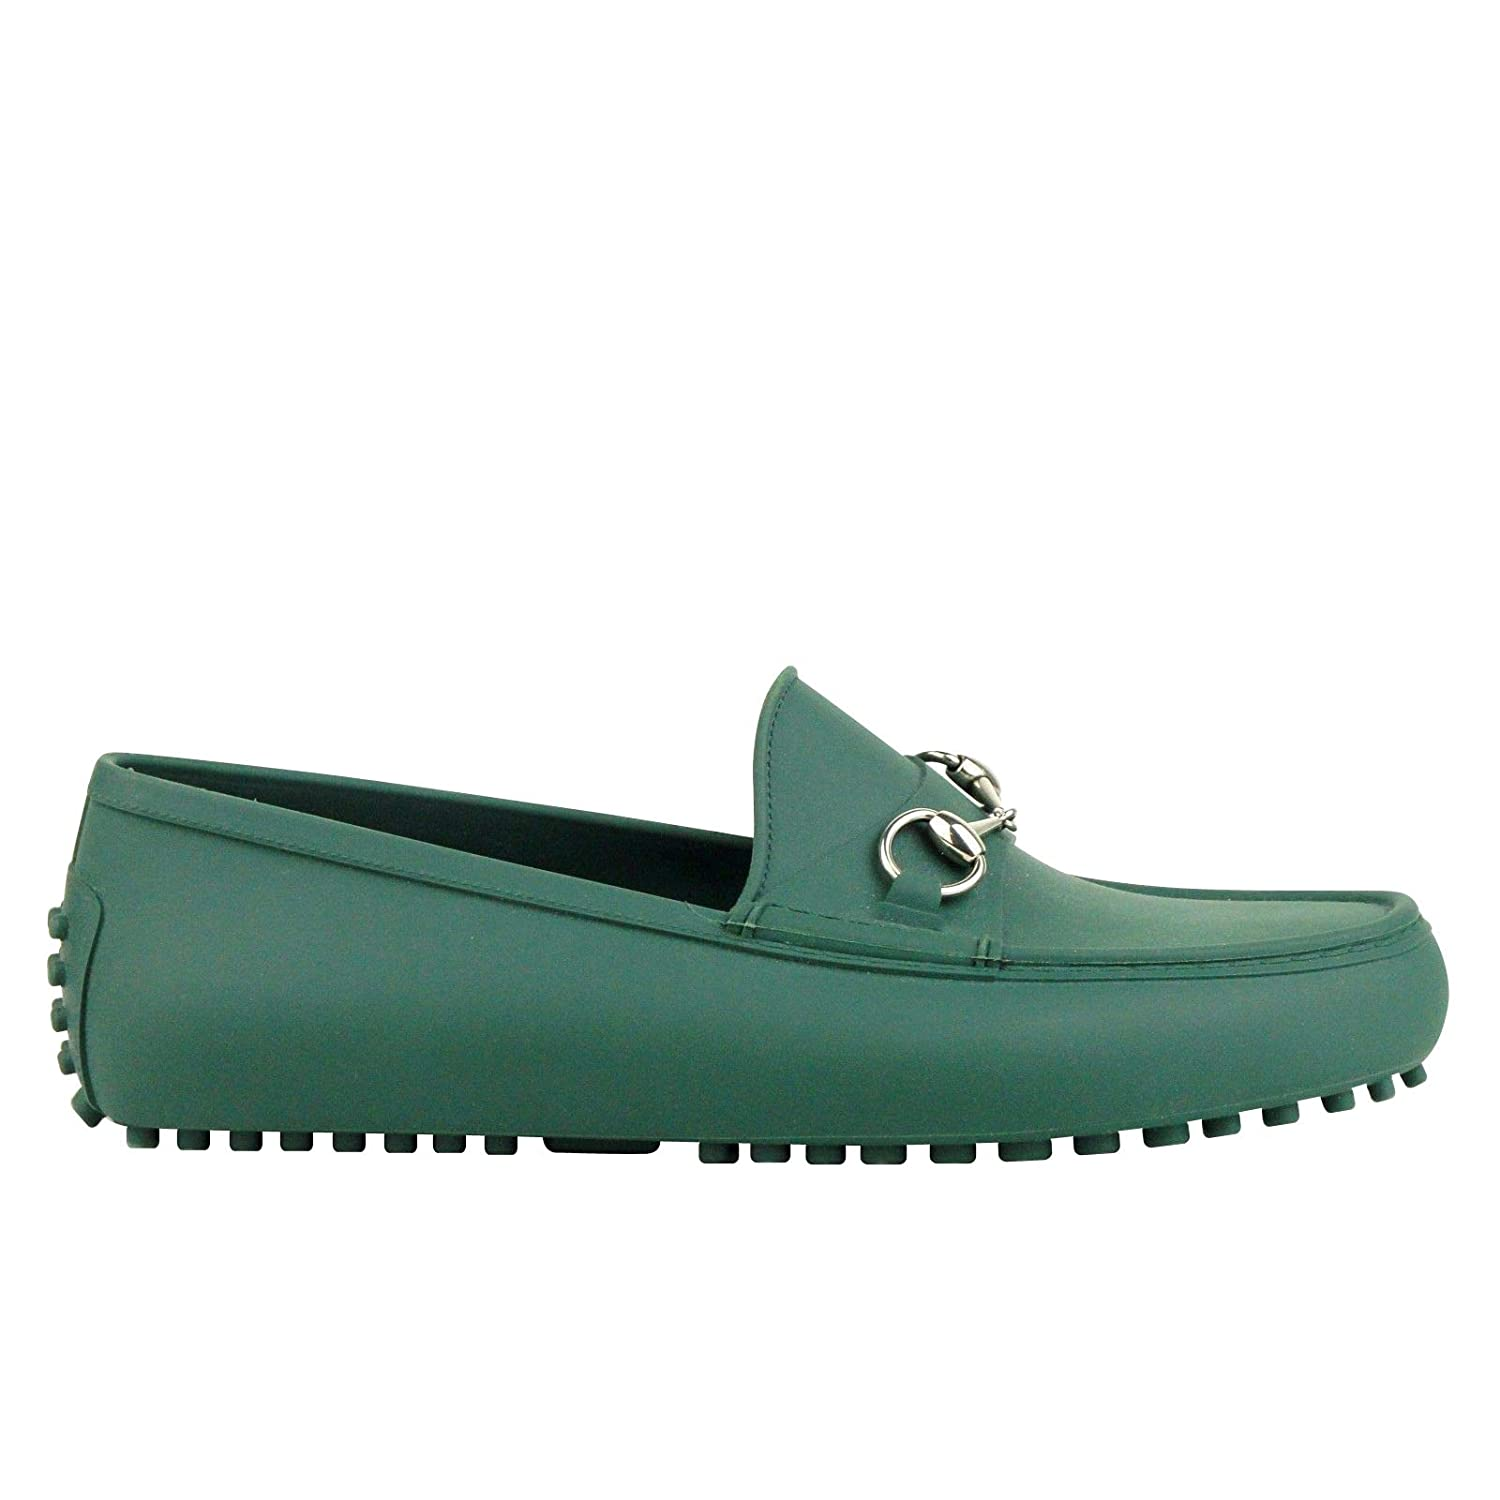 8d3ffa3ddc9cd Amazon.com: Gucci Silver Horsebit Green Rubber Loafer Shoes 386586 3020 (11  G / 11.5 US): Shoes